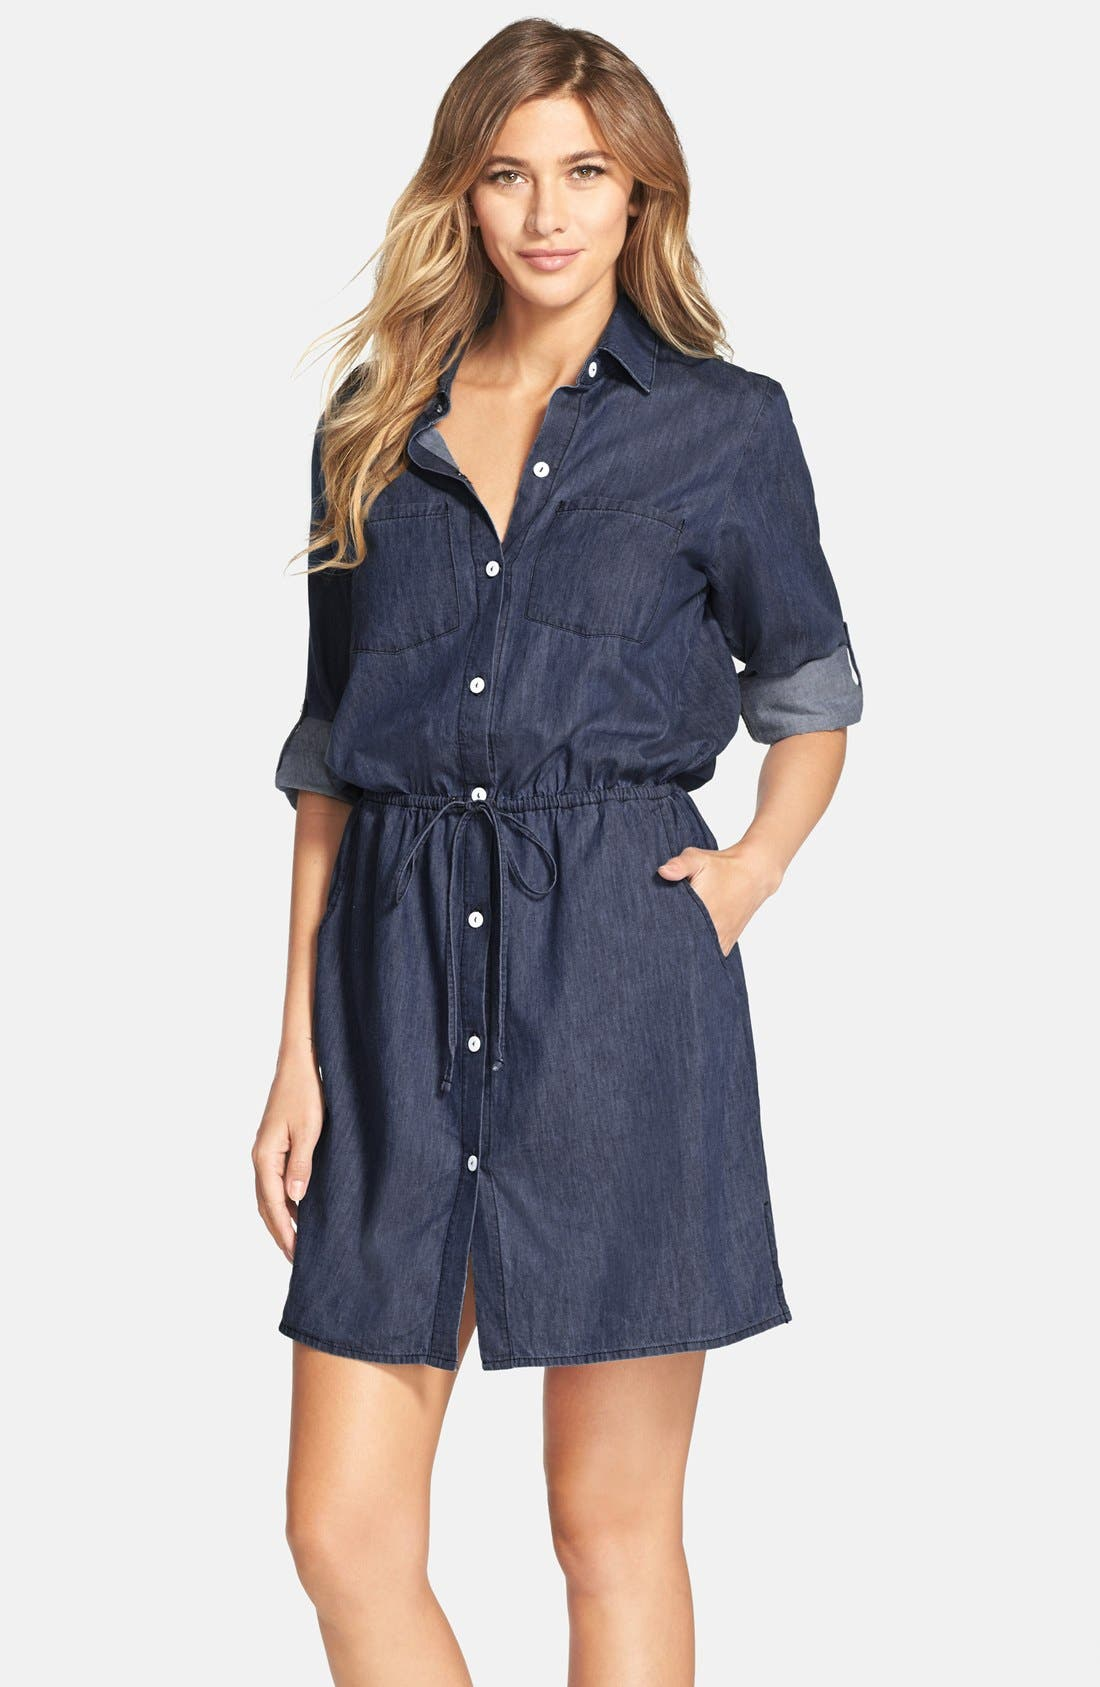 Alternate Image 1 Selected - Tommy Bahama Cotton Chambray Shirtdress